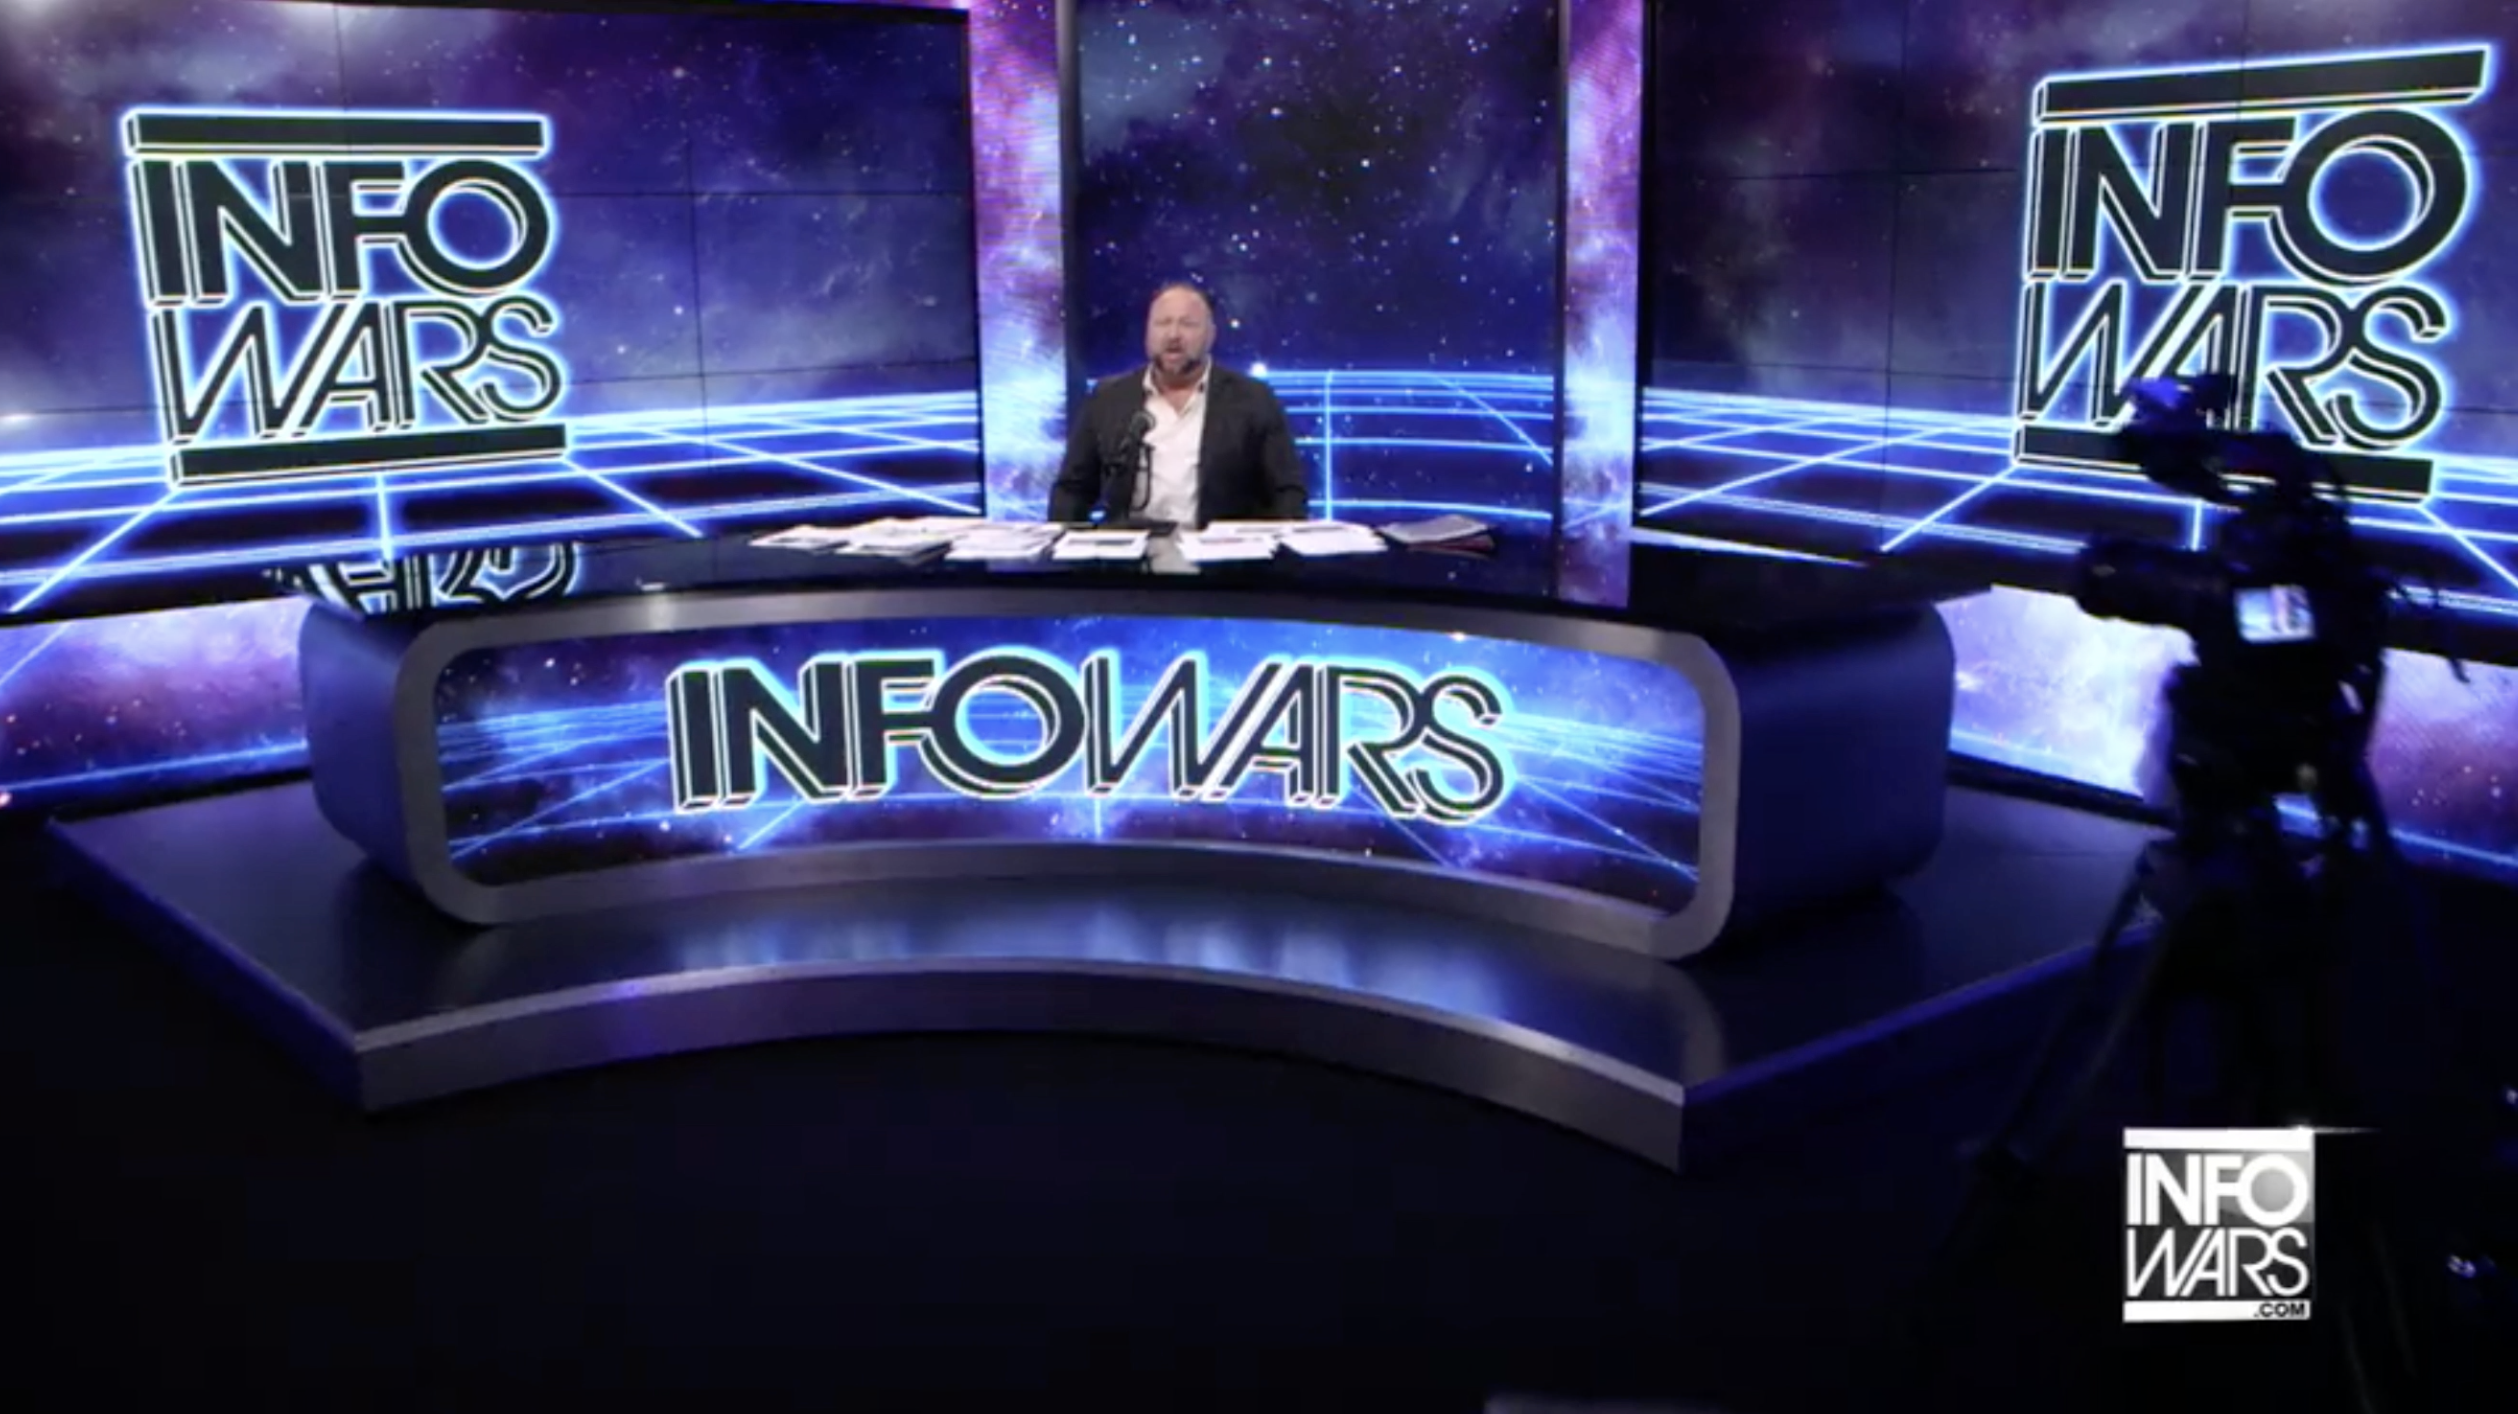 Alex Jones Infowars Studio The Resistance Video EXZM Zack Mount January 14th 2021